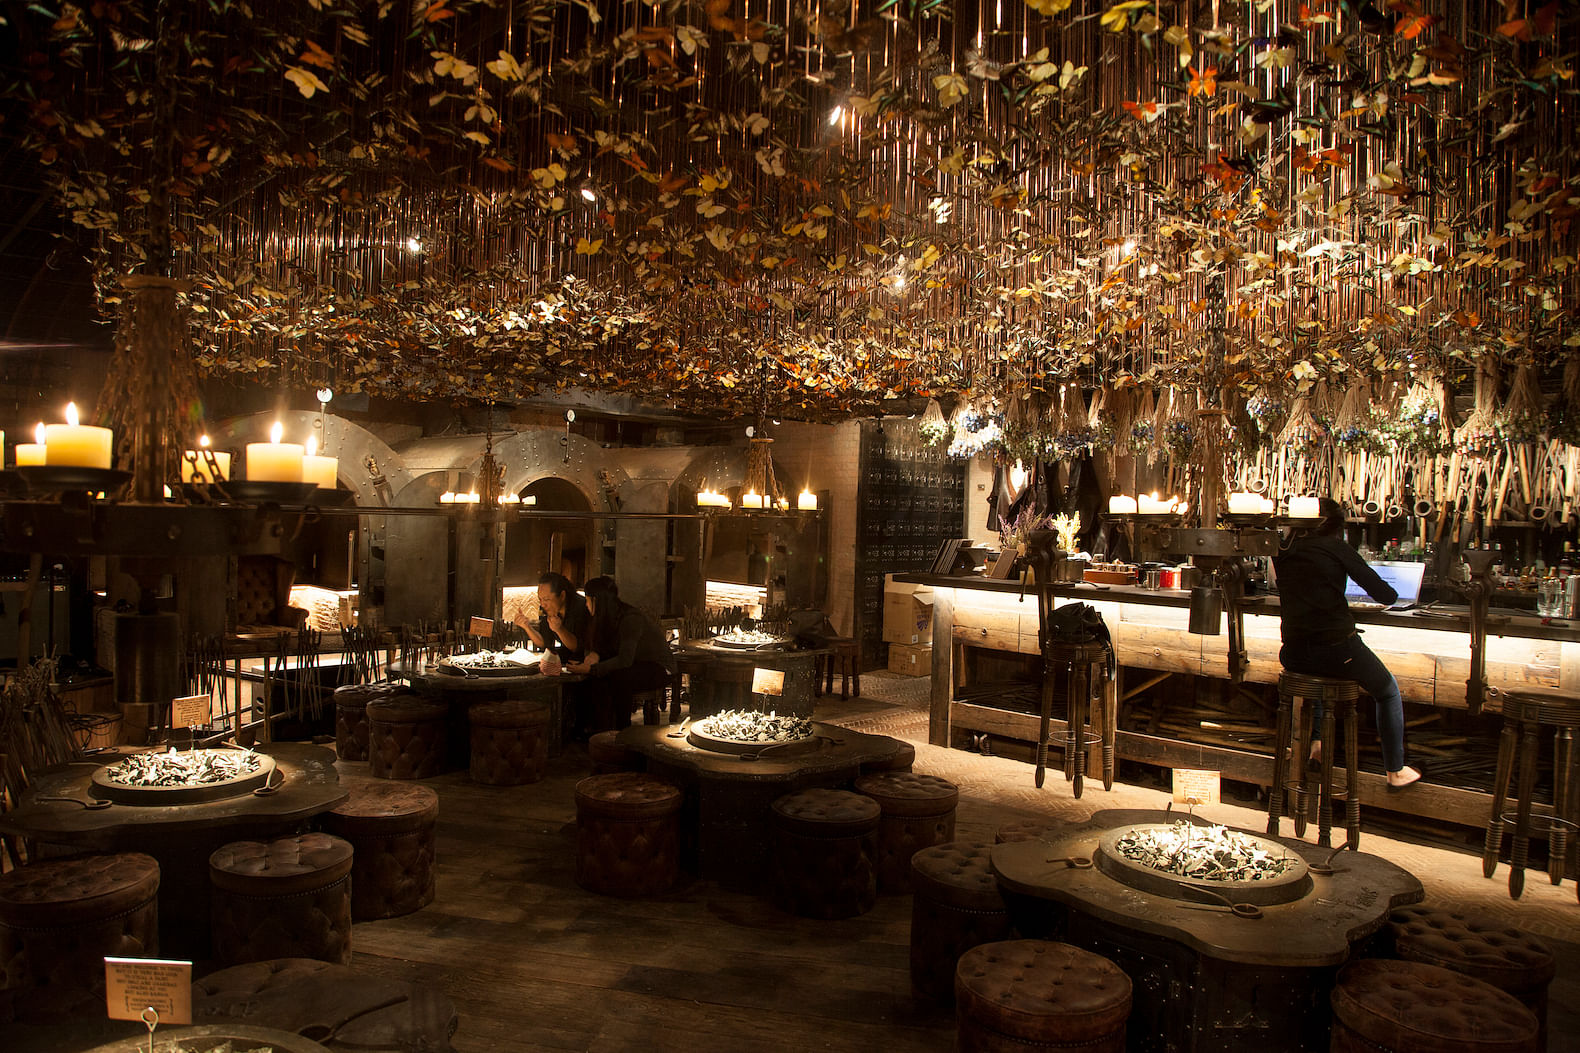 Restaurants and bars in Hong Kong with stylish interiors | Home ...